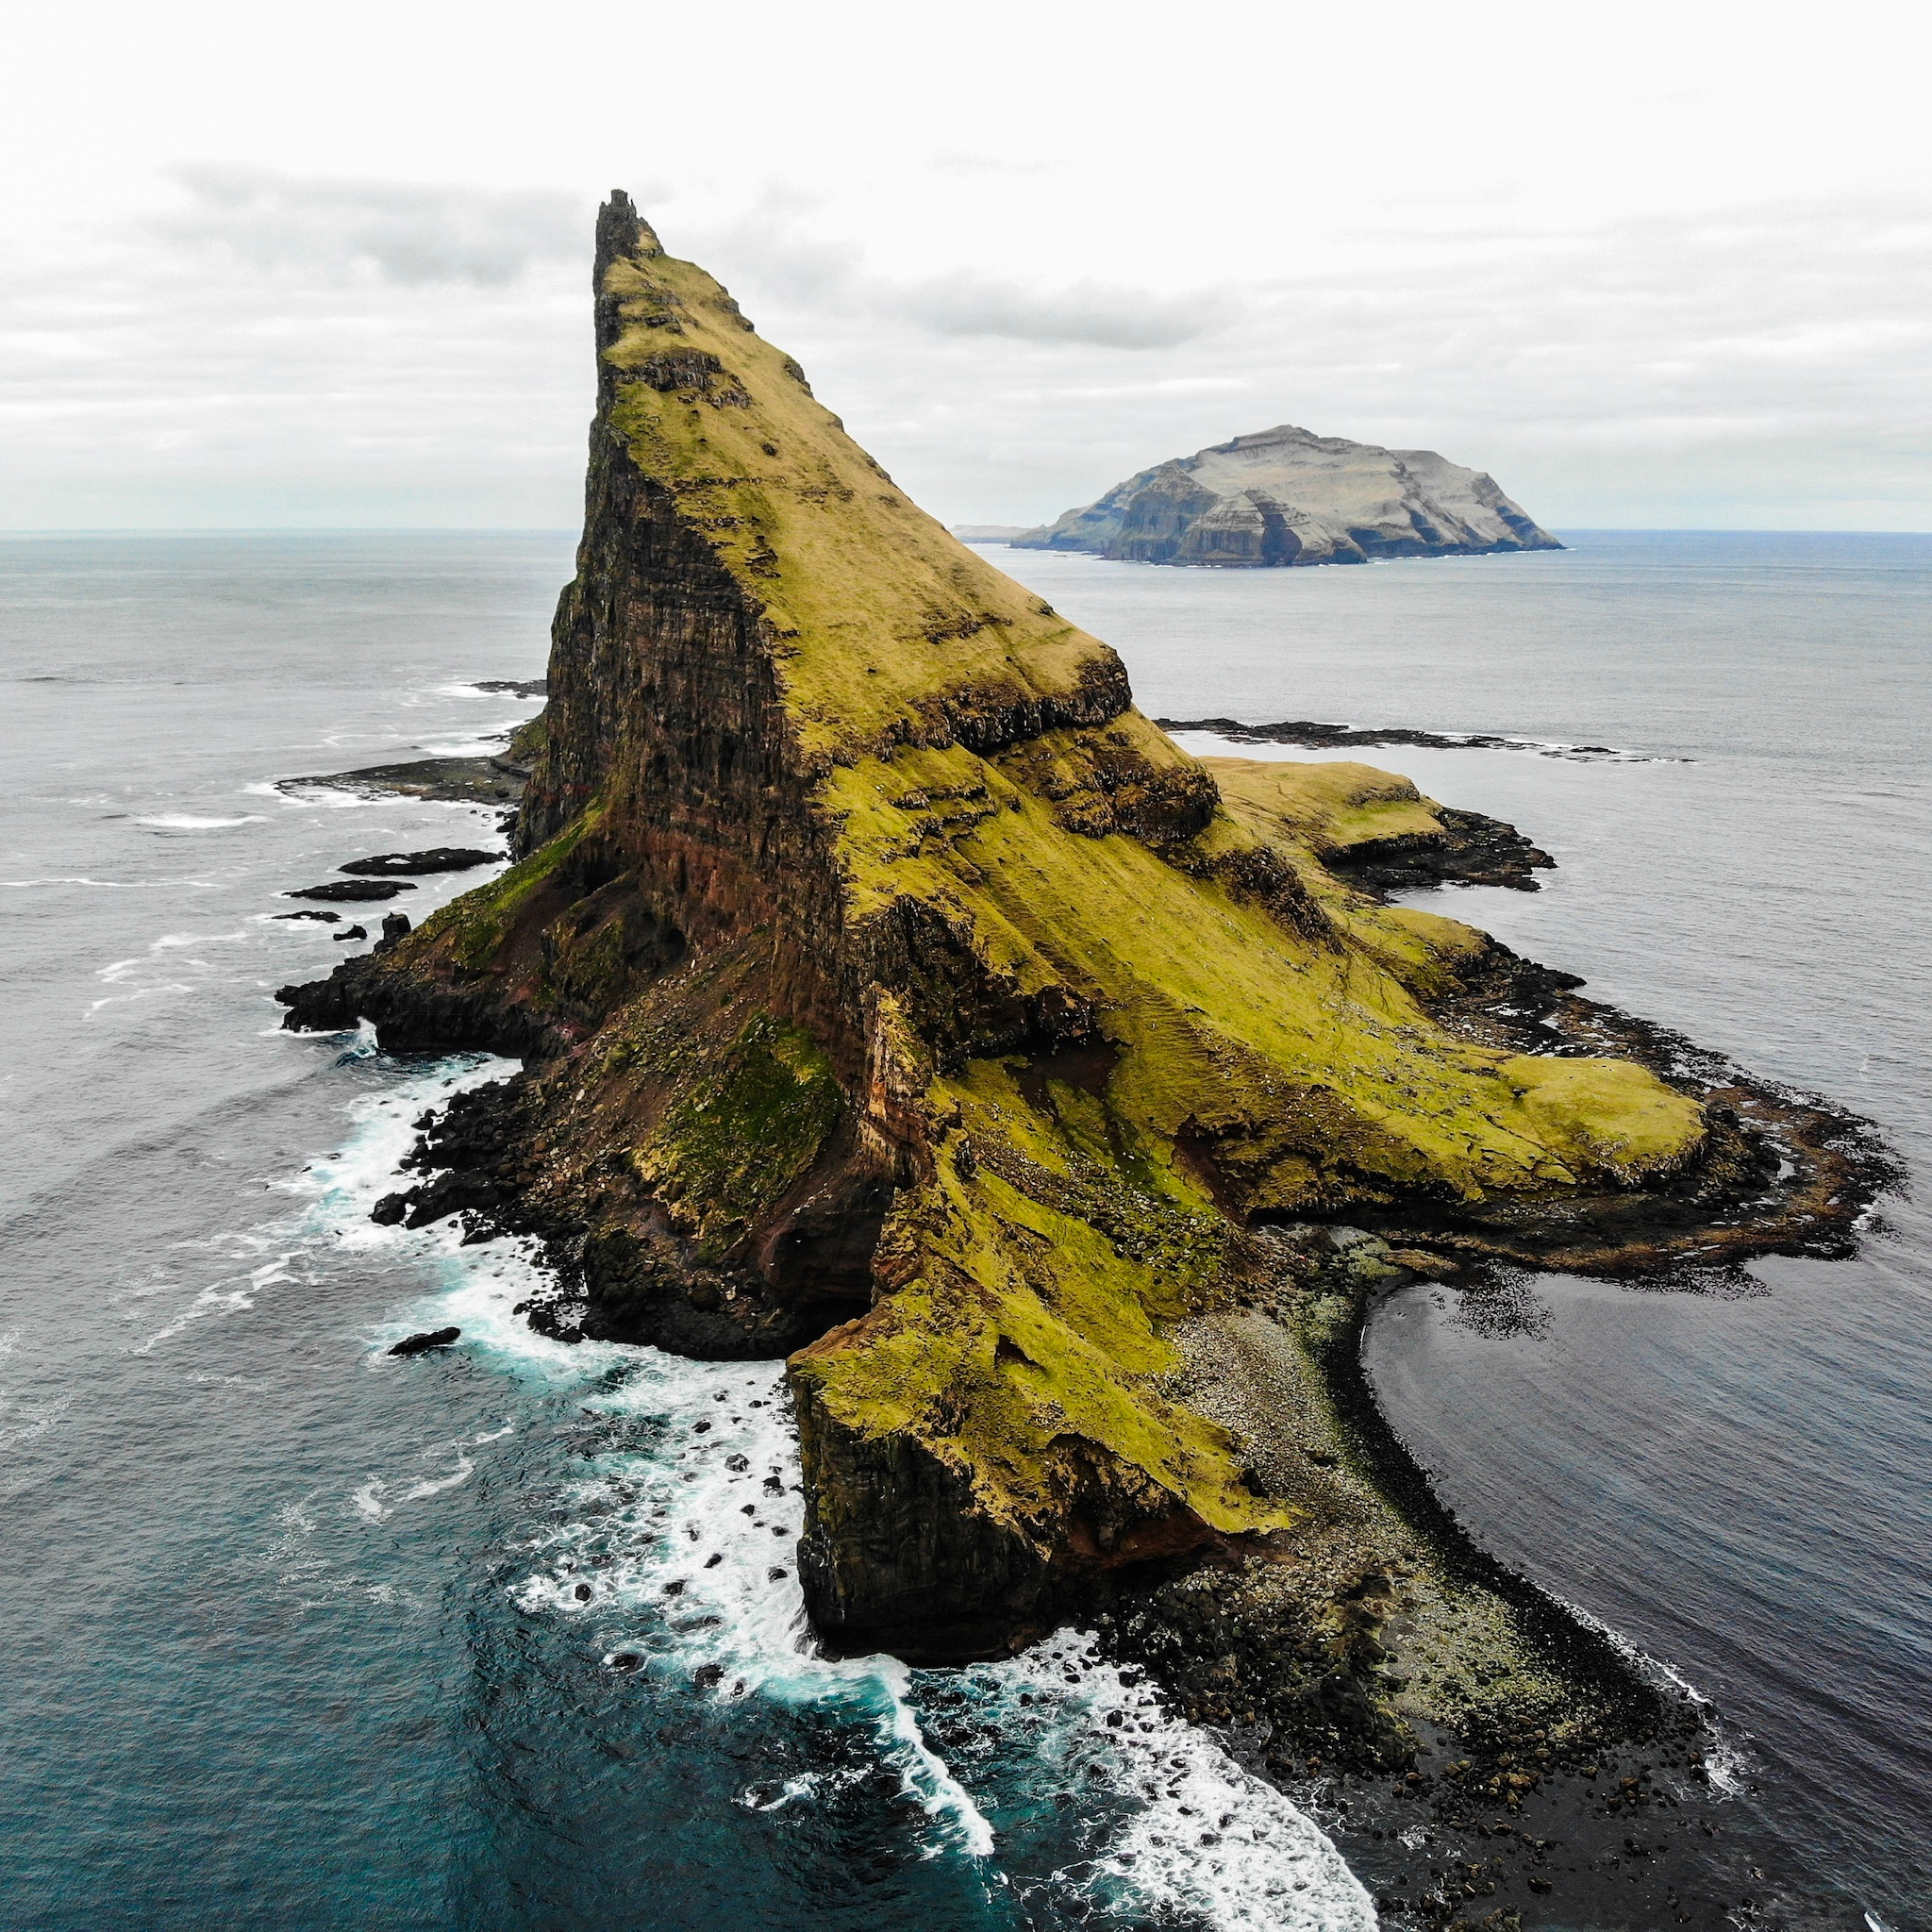 One of the more famous views of the Faroe Islands. Don't be fooled, these views aren't easy to get to, and as you'll read has its share of dangers.